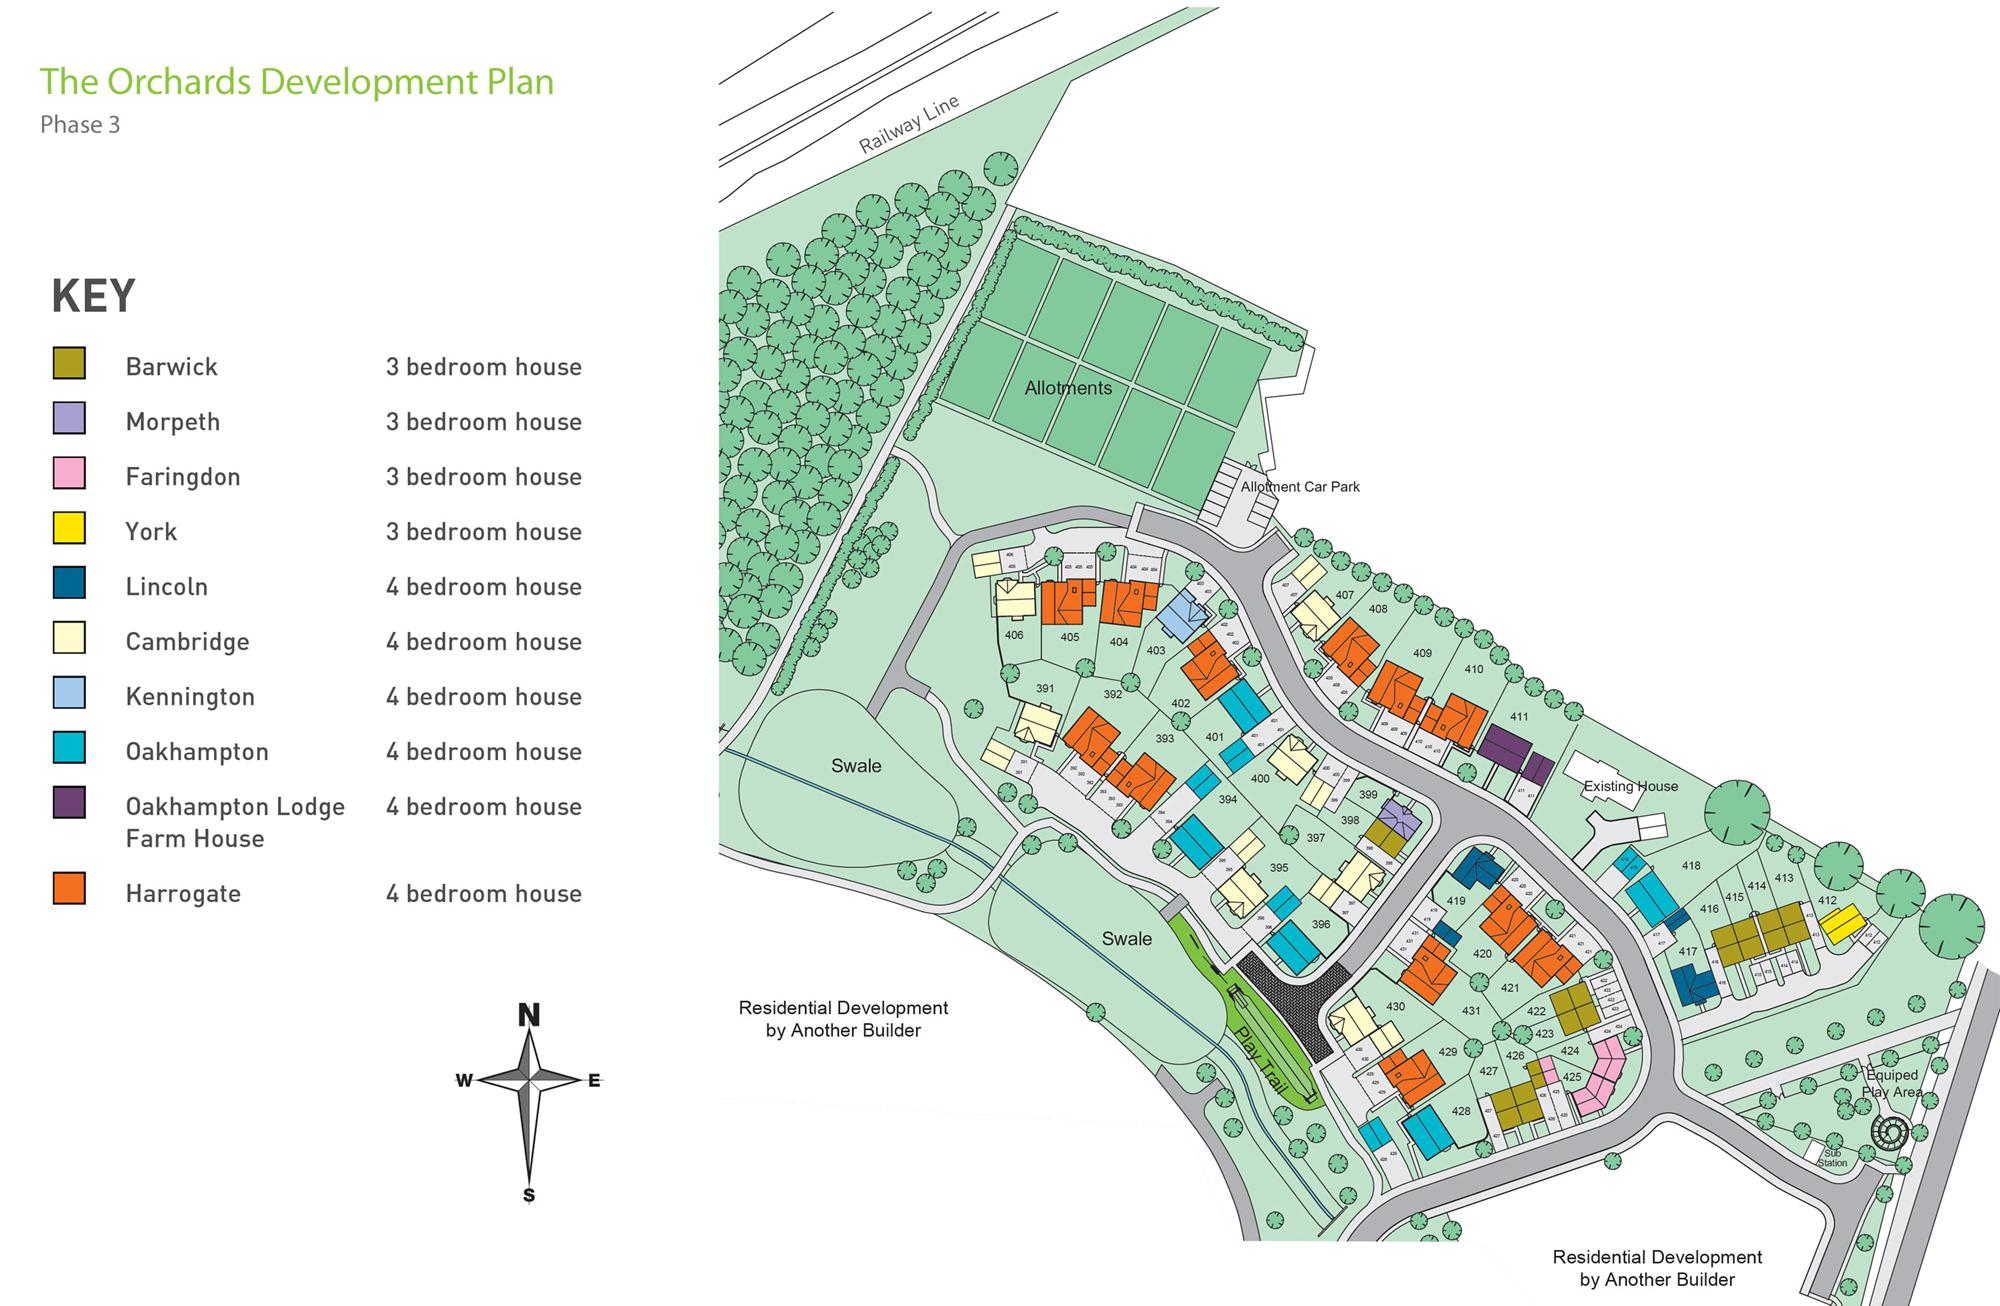 The Orchards Phase 3 Development Plan